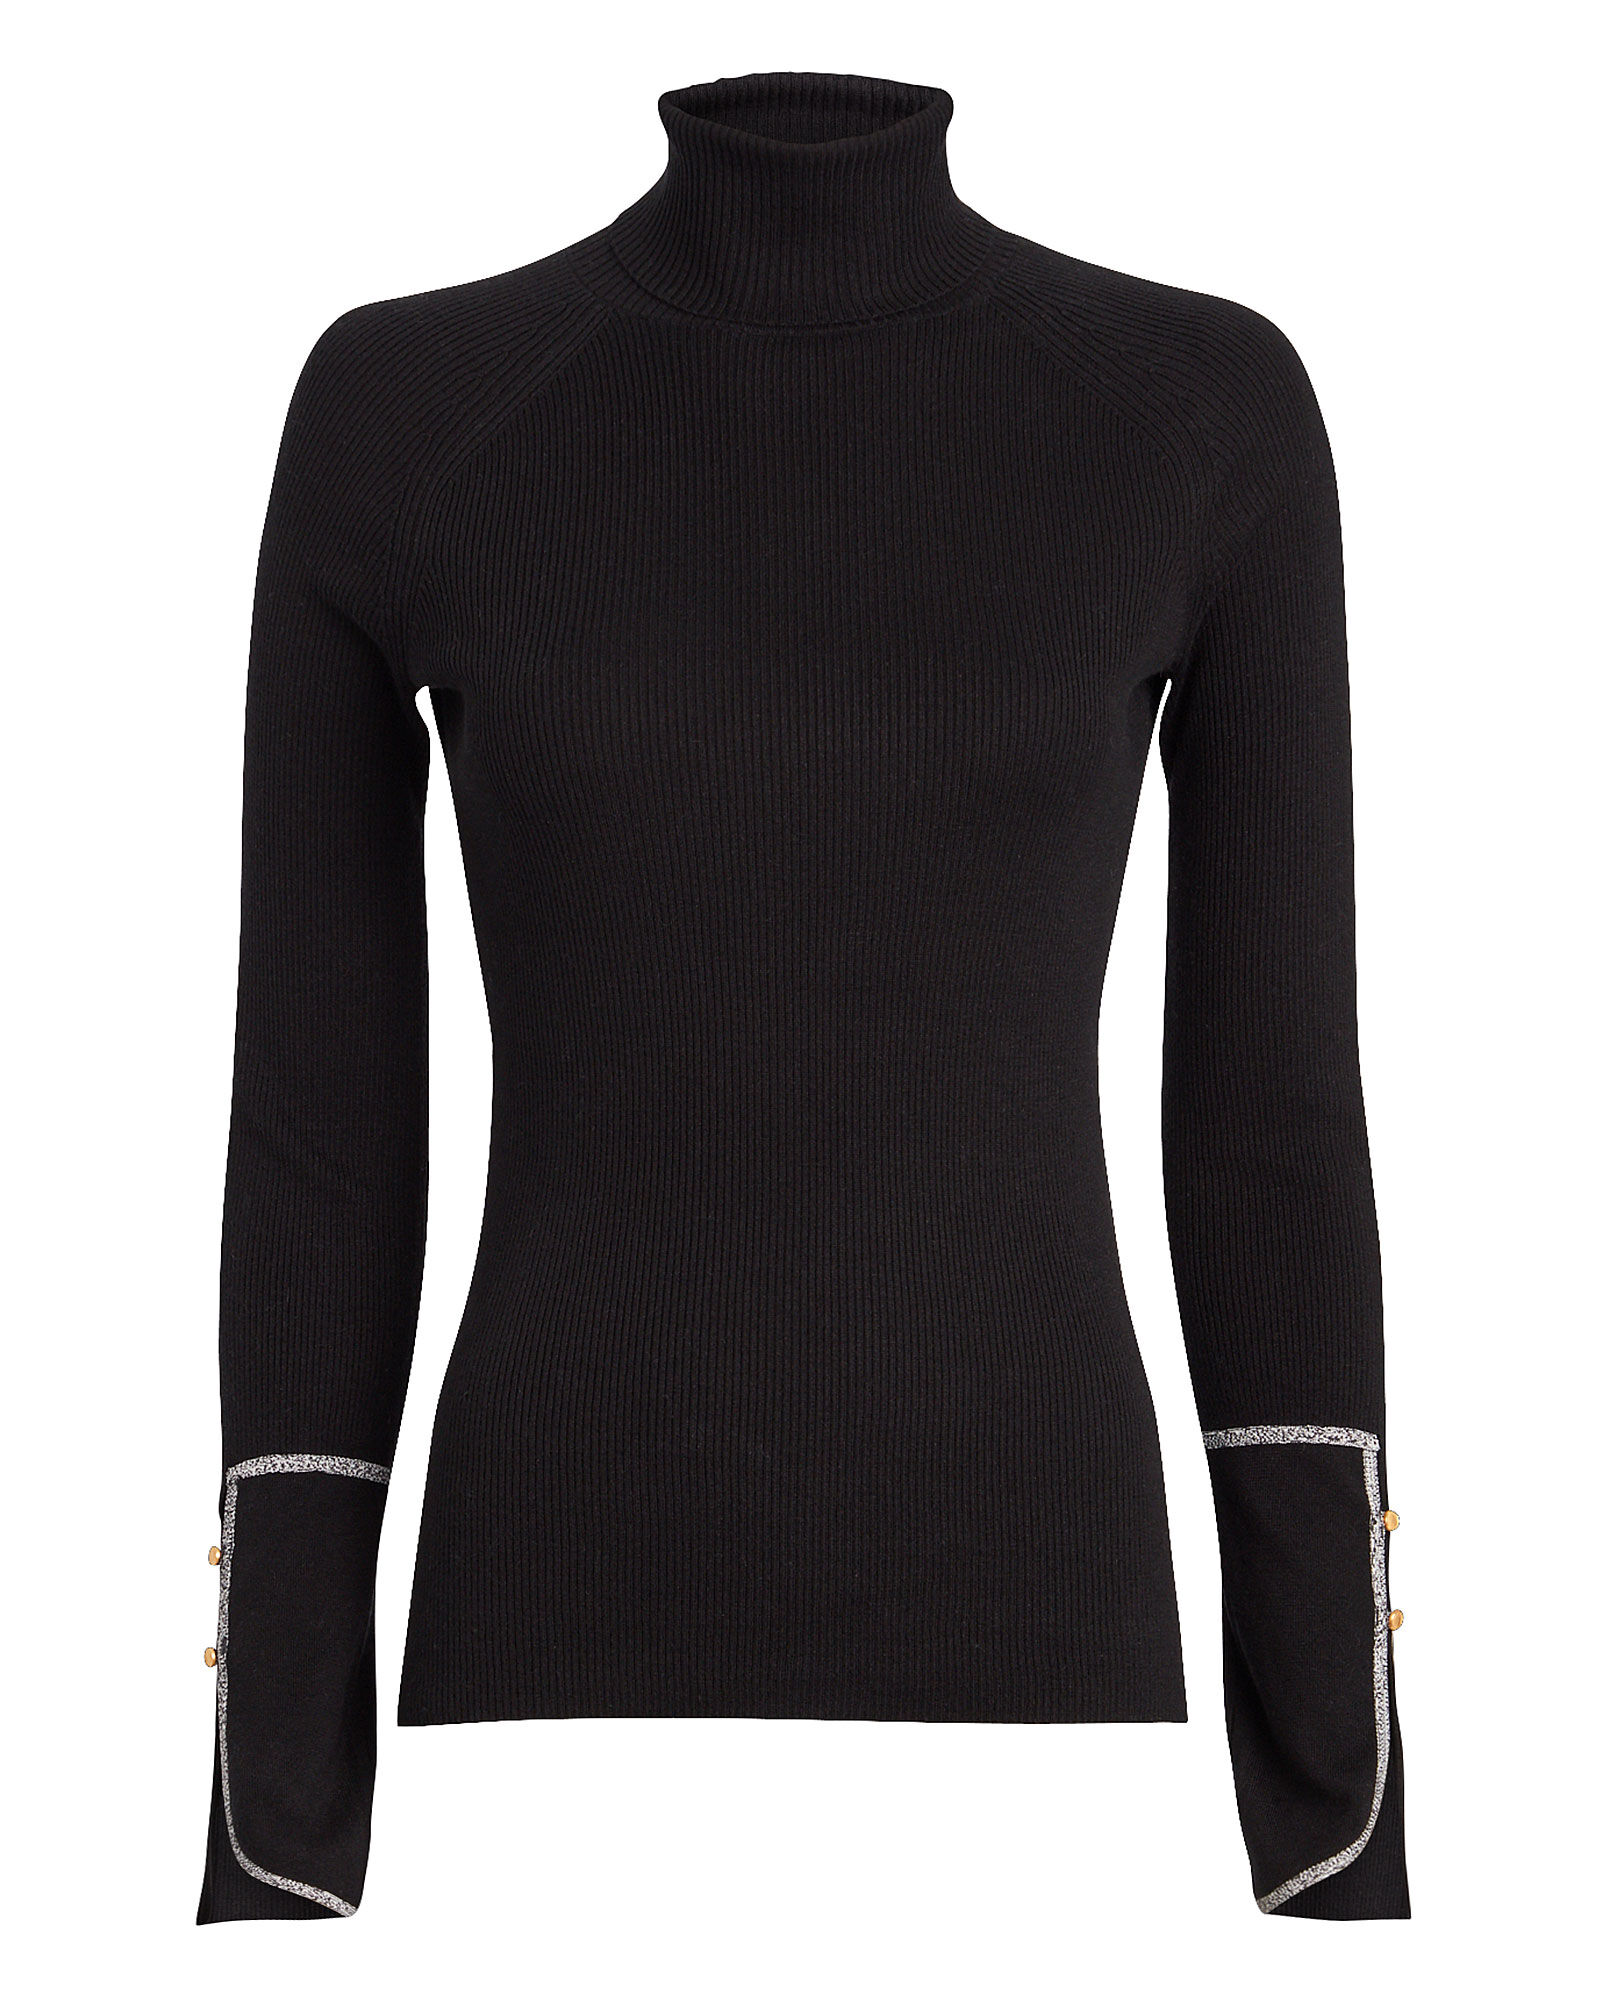 Silk Cashmere Rib Knit Turtleneck, BLACK, hi-res